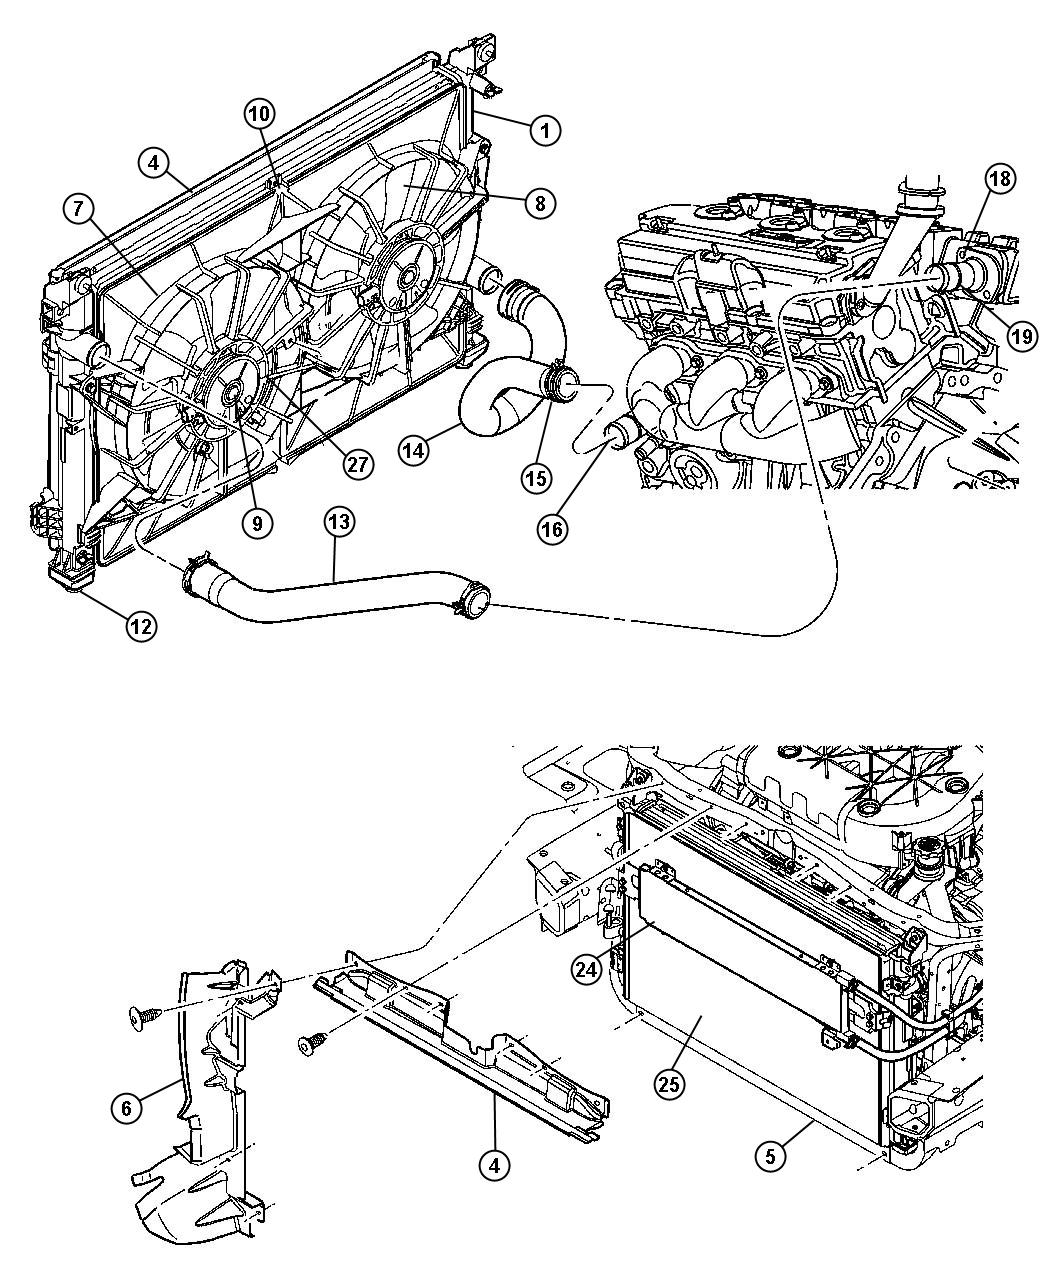 Dodge Caravan 2 4 Engine Diagrams